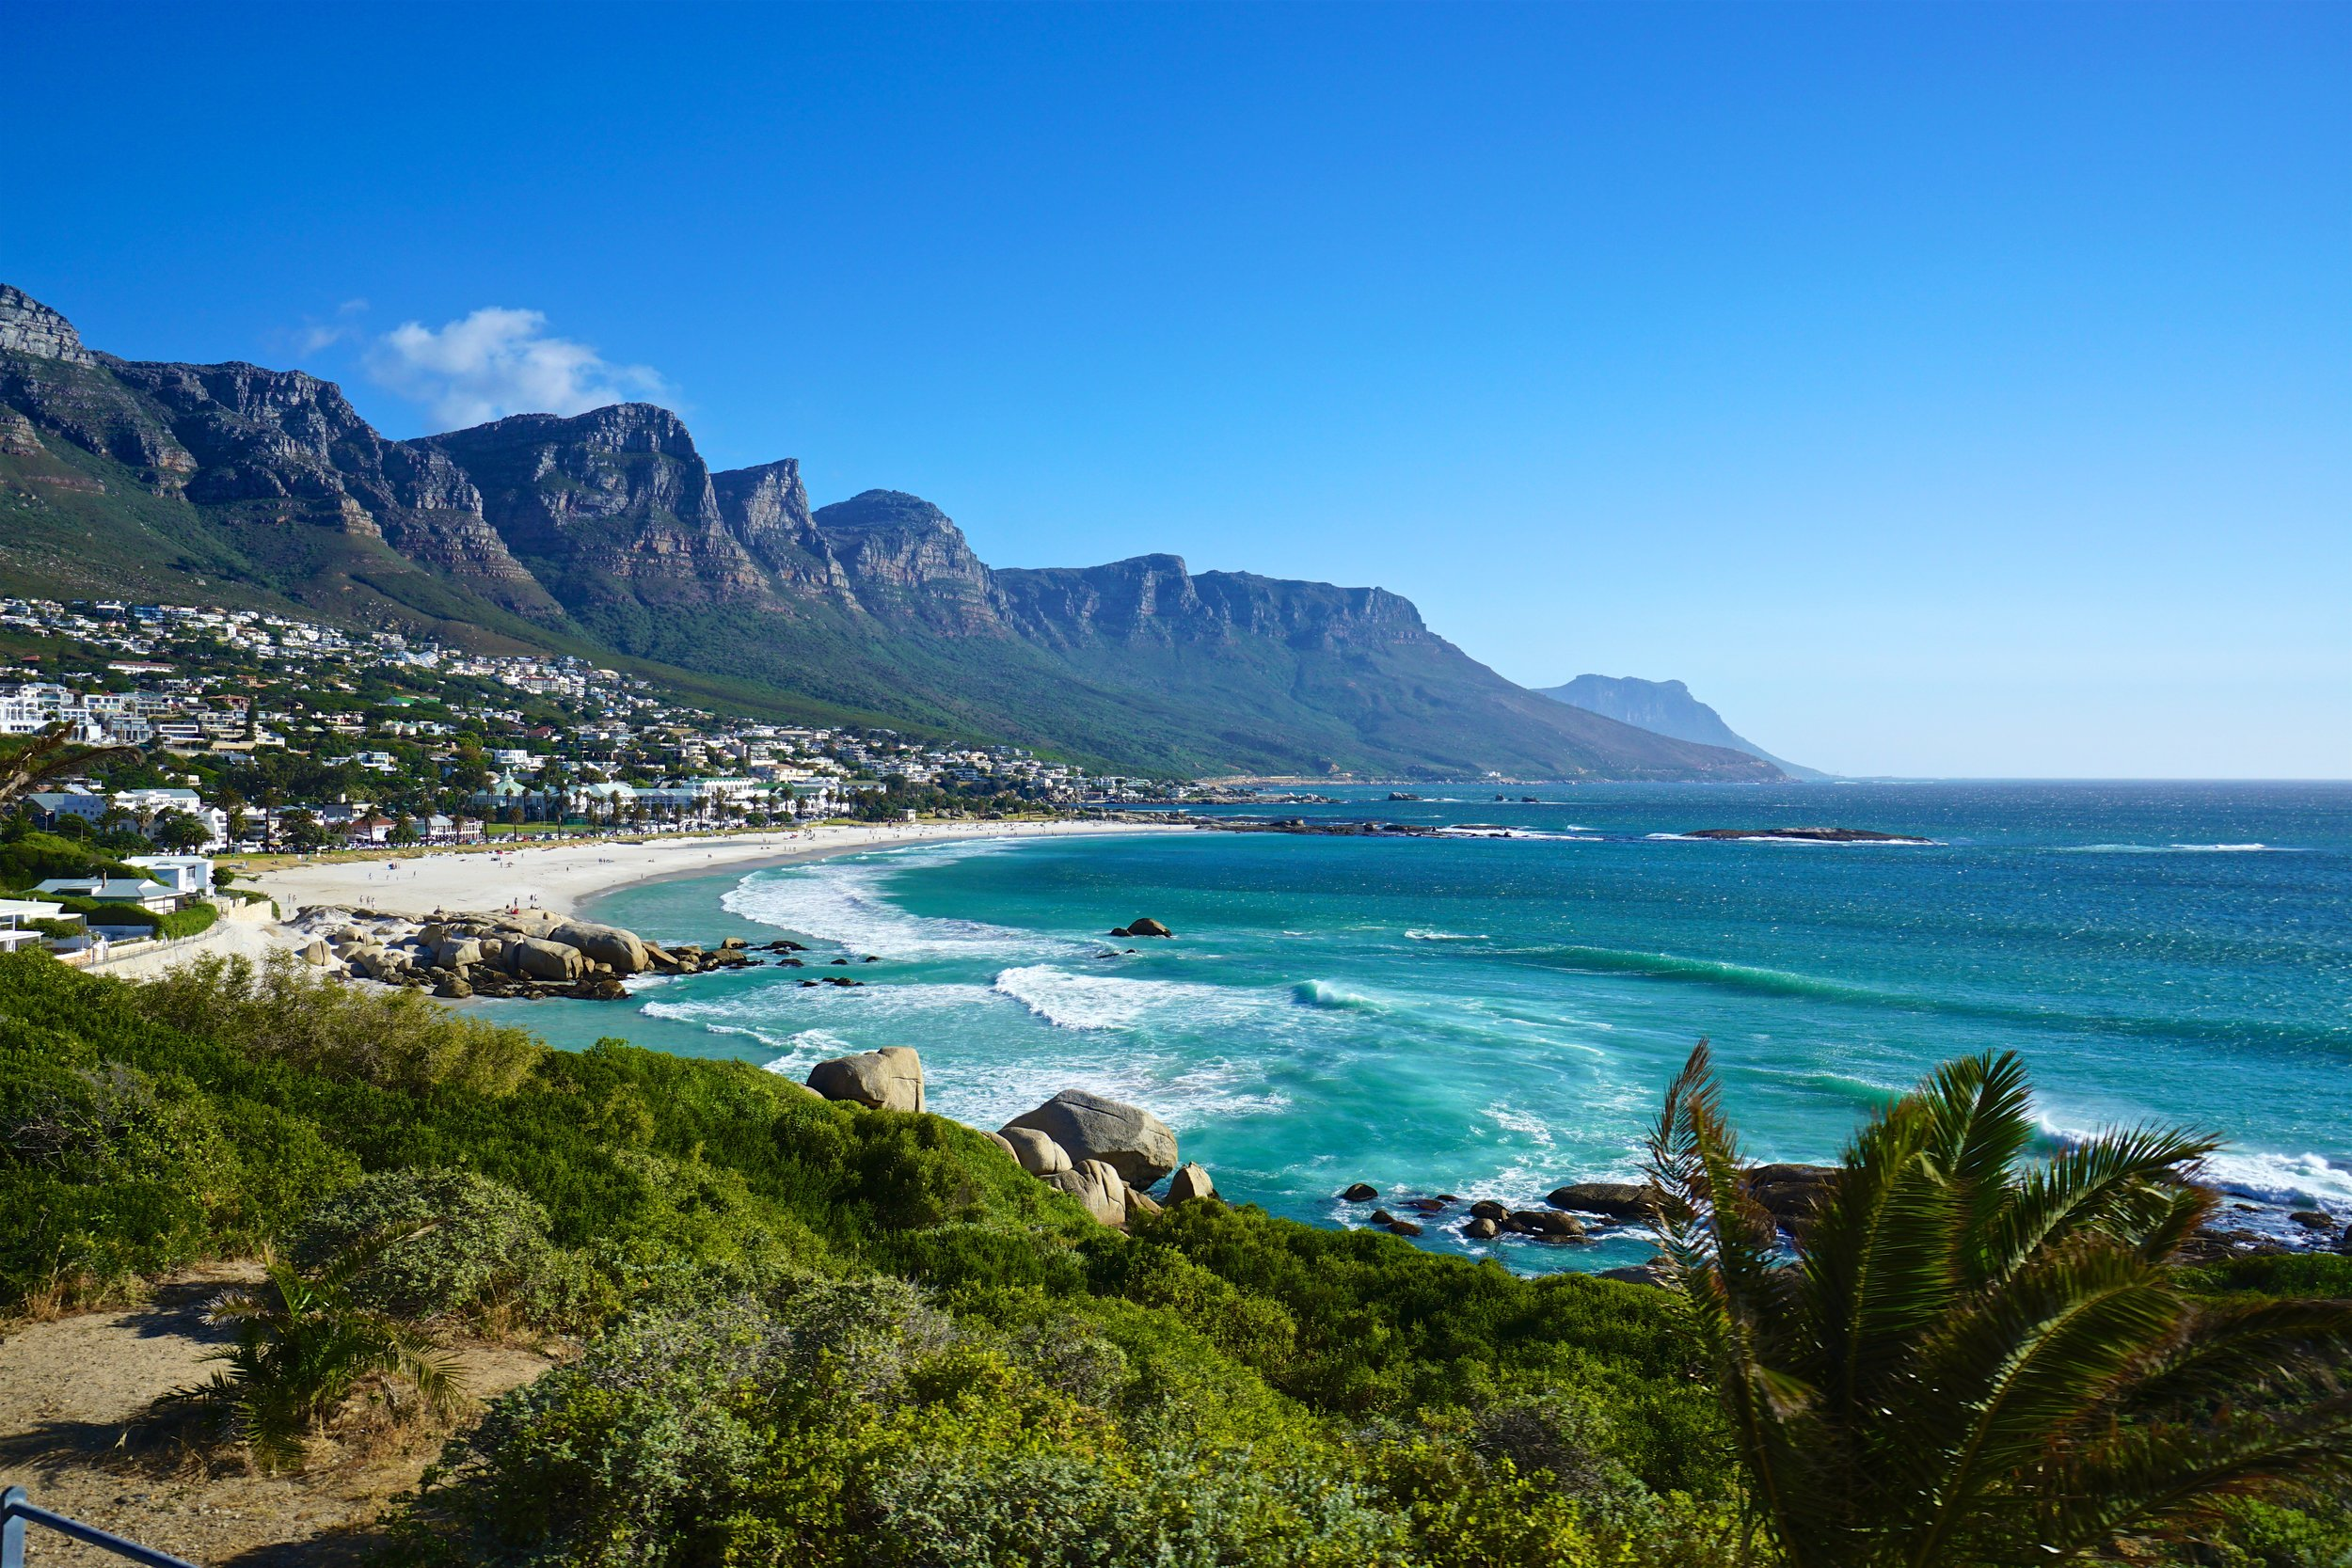 Cape Town, South Africa - Nov 16.jpg